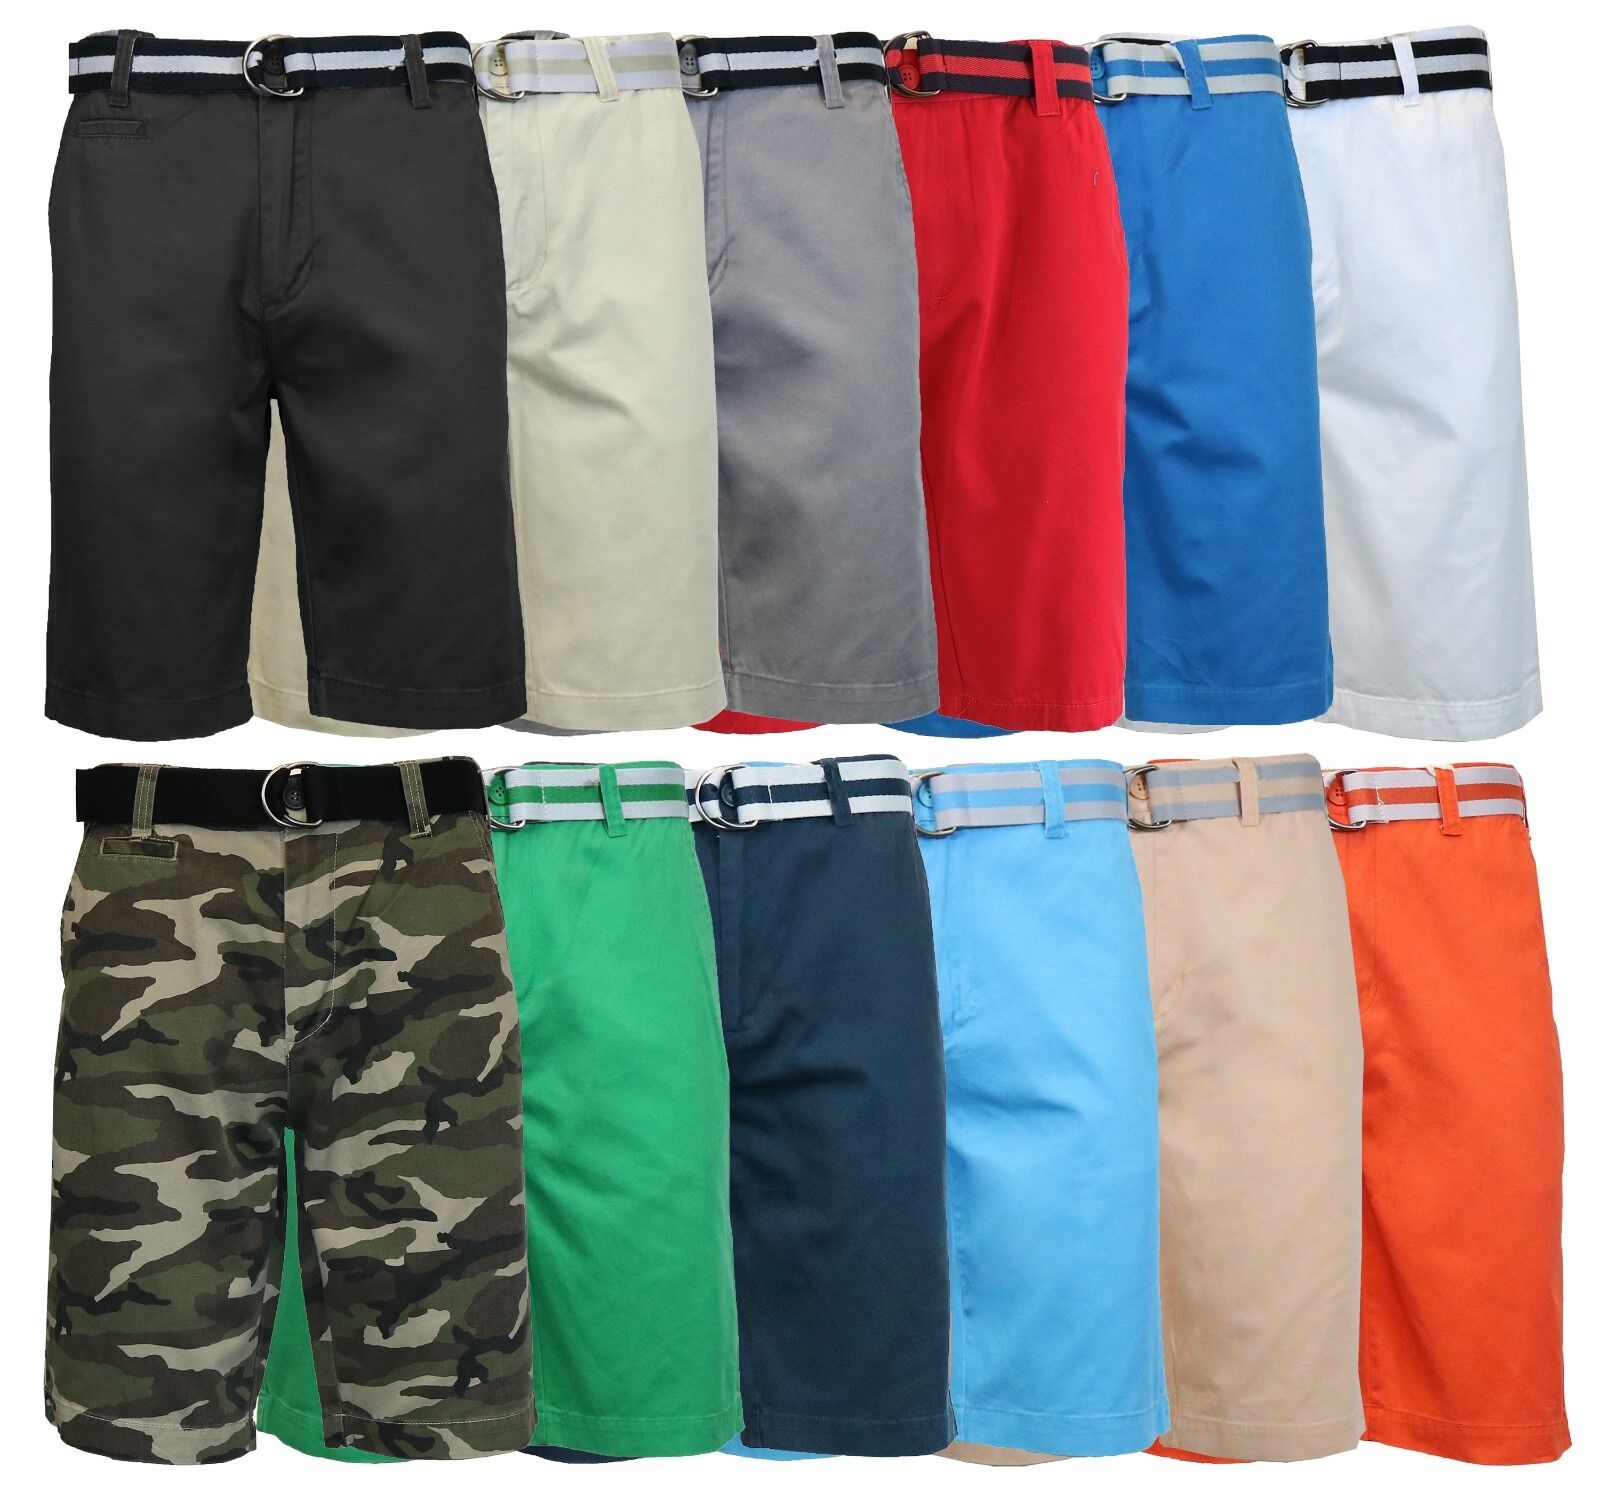 Mens 100% Cotton Slim Fit Belted Shorts – 5 pockets – Soft Washed Cotton Twill Clothing, Shoes & Accessories